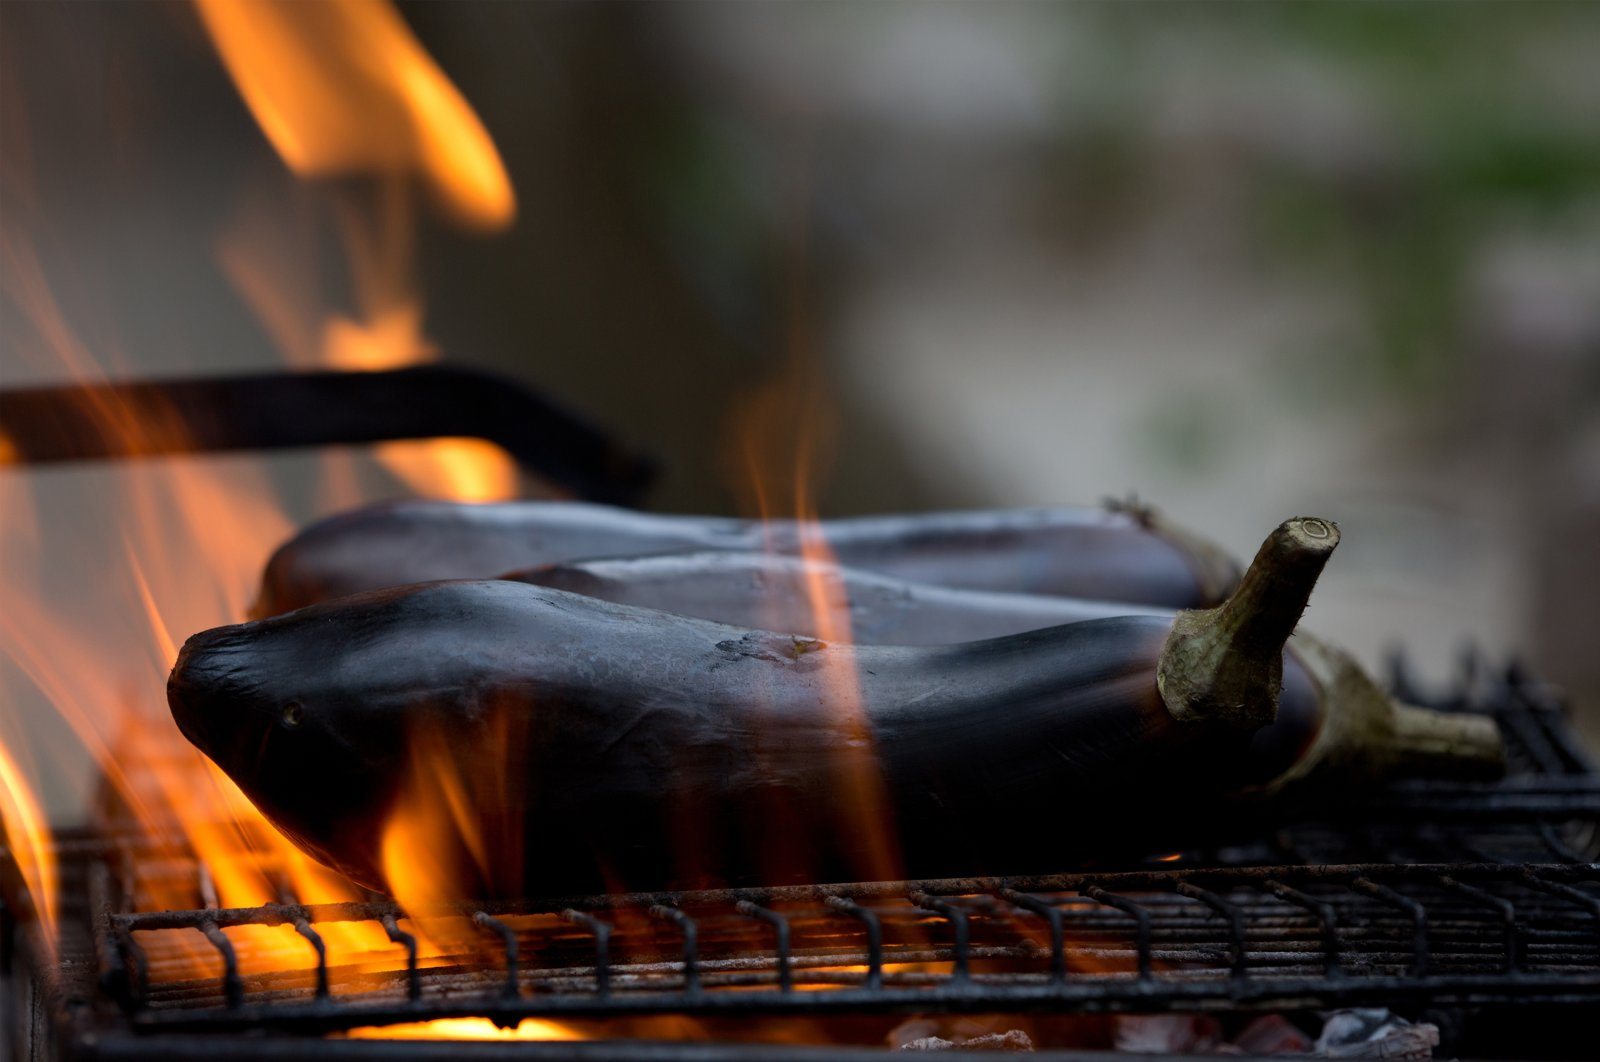 Barbecuing or smoking eggplants are one of the tastiest ways to prepare the dark-skinned vegetables. (Shutterstock Photo)